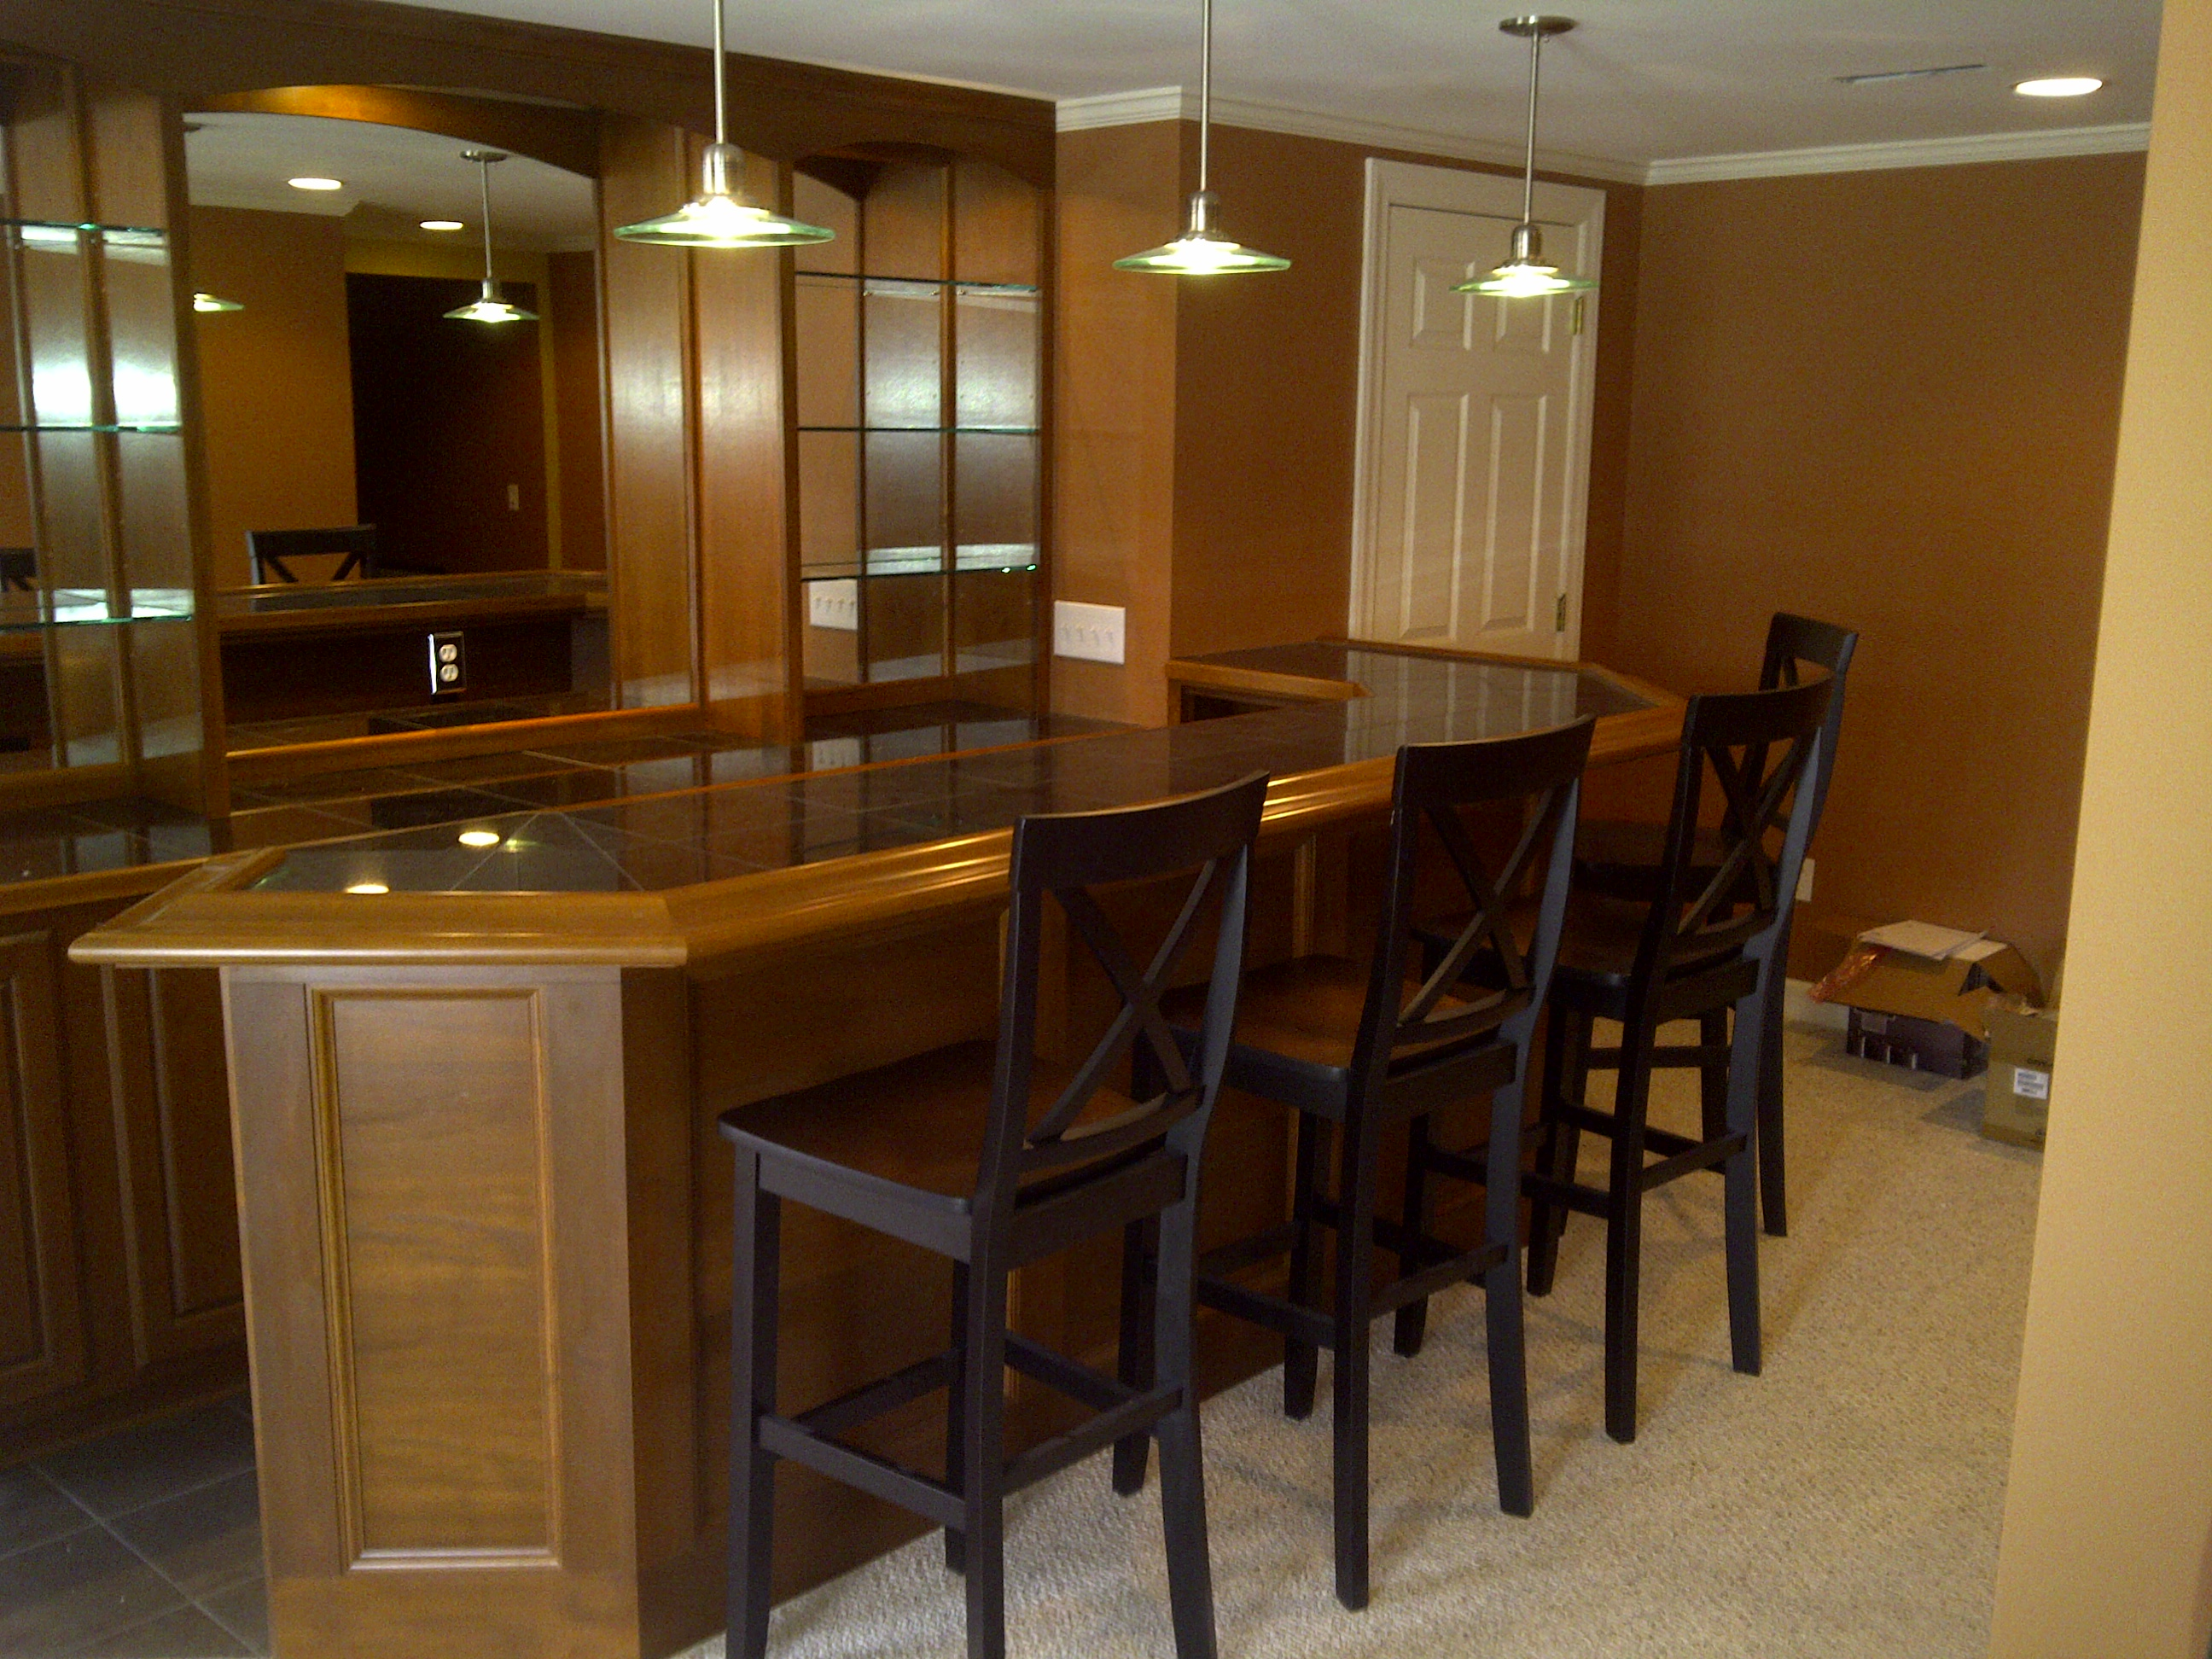 kitchen bathroom basement remodeling expert near victor